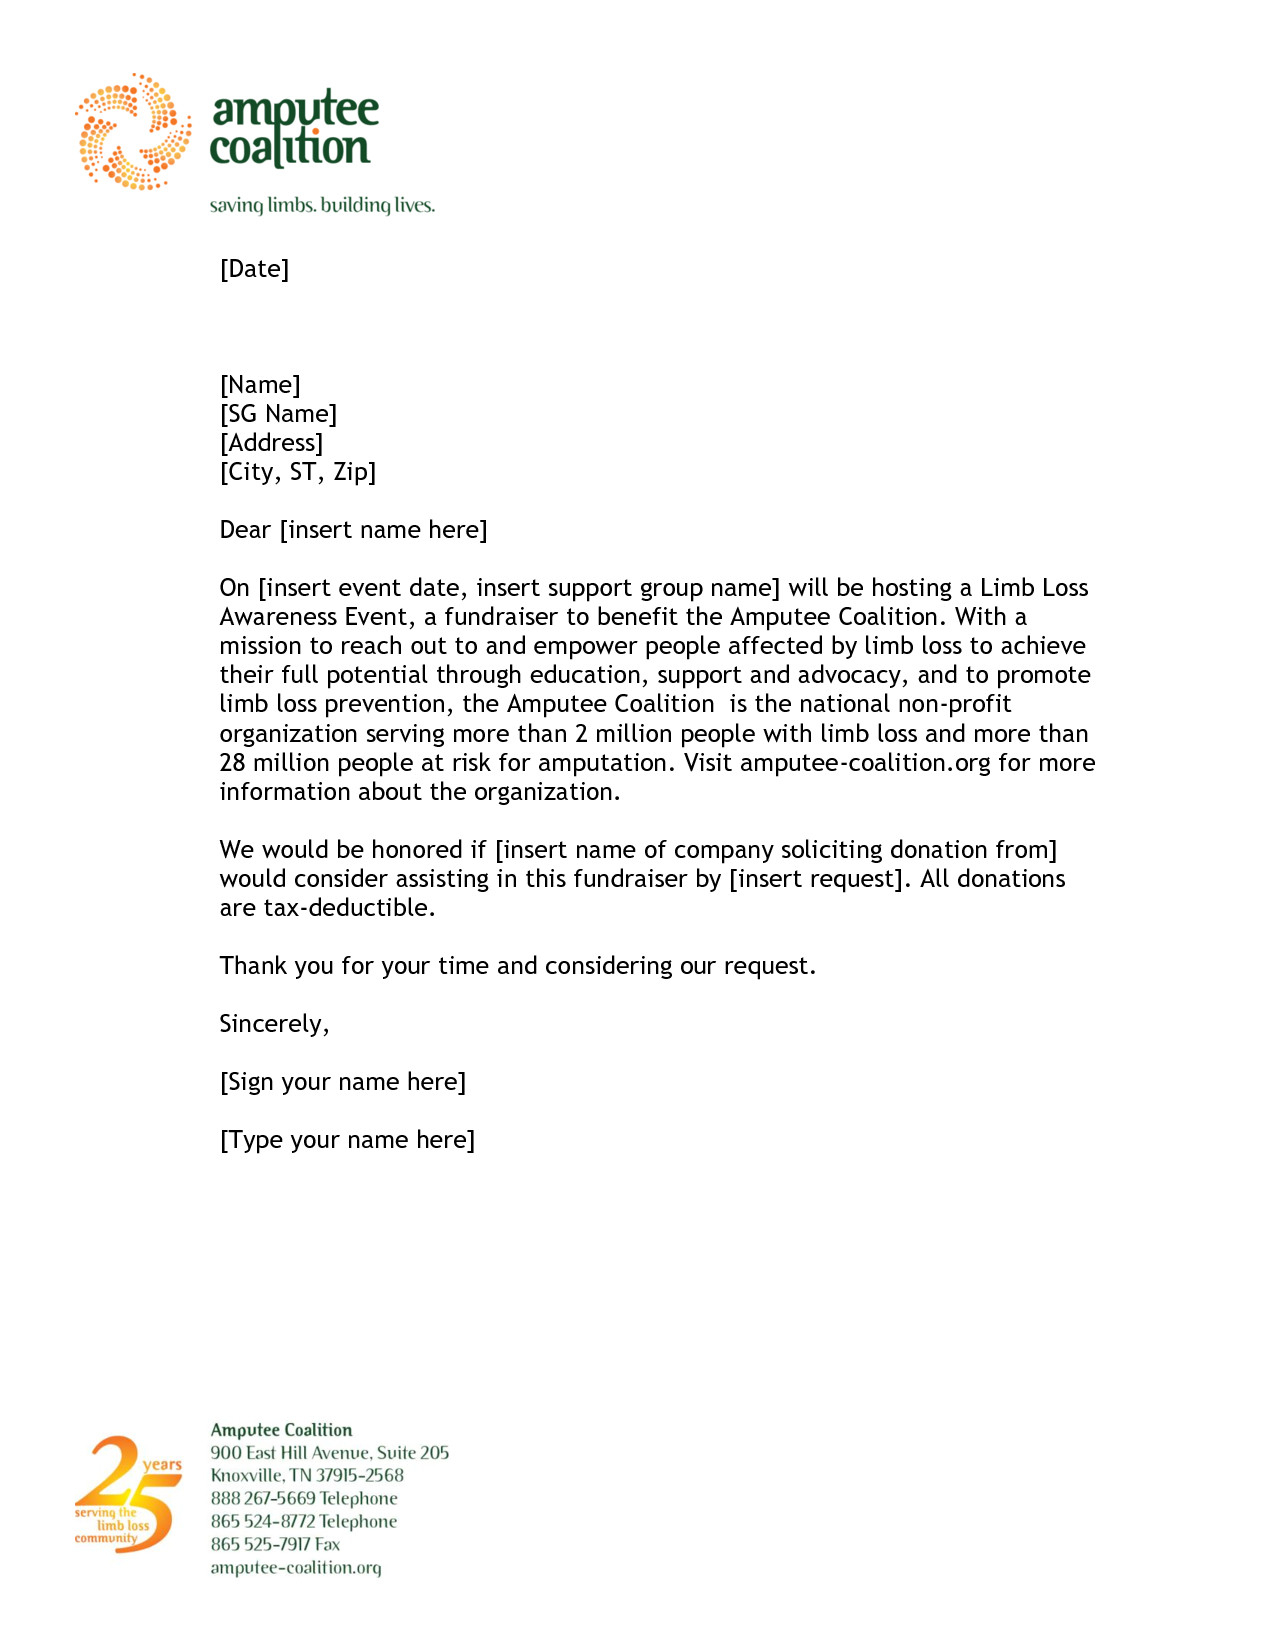 Sponsorship Letter Template for Non Profit - 20 New Letter Template for Donations Request